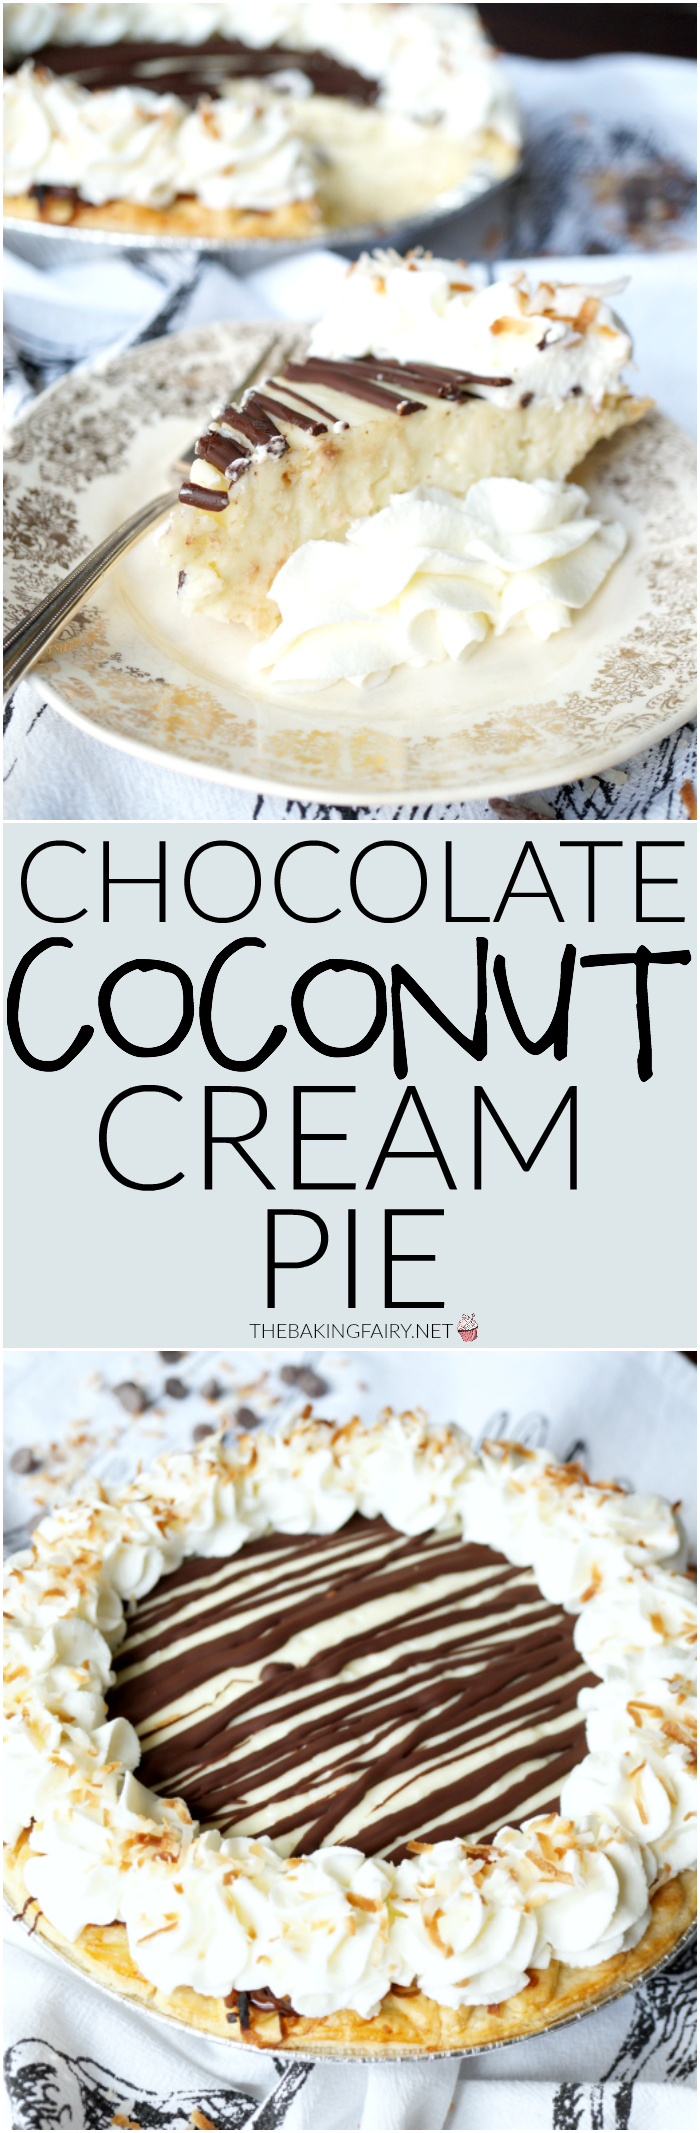 chocolate coconut cream pie | The Baking Fairy